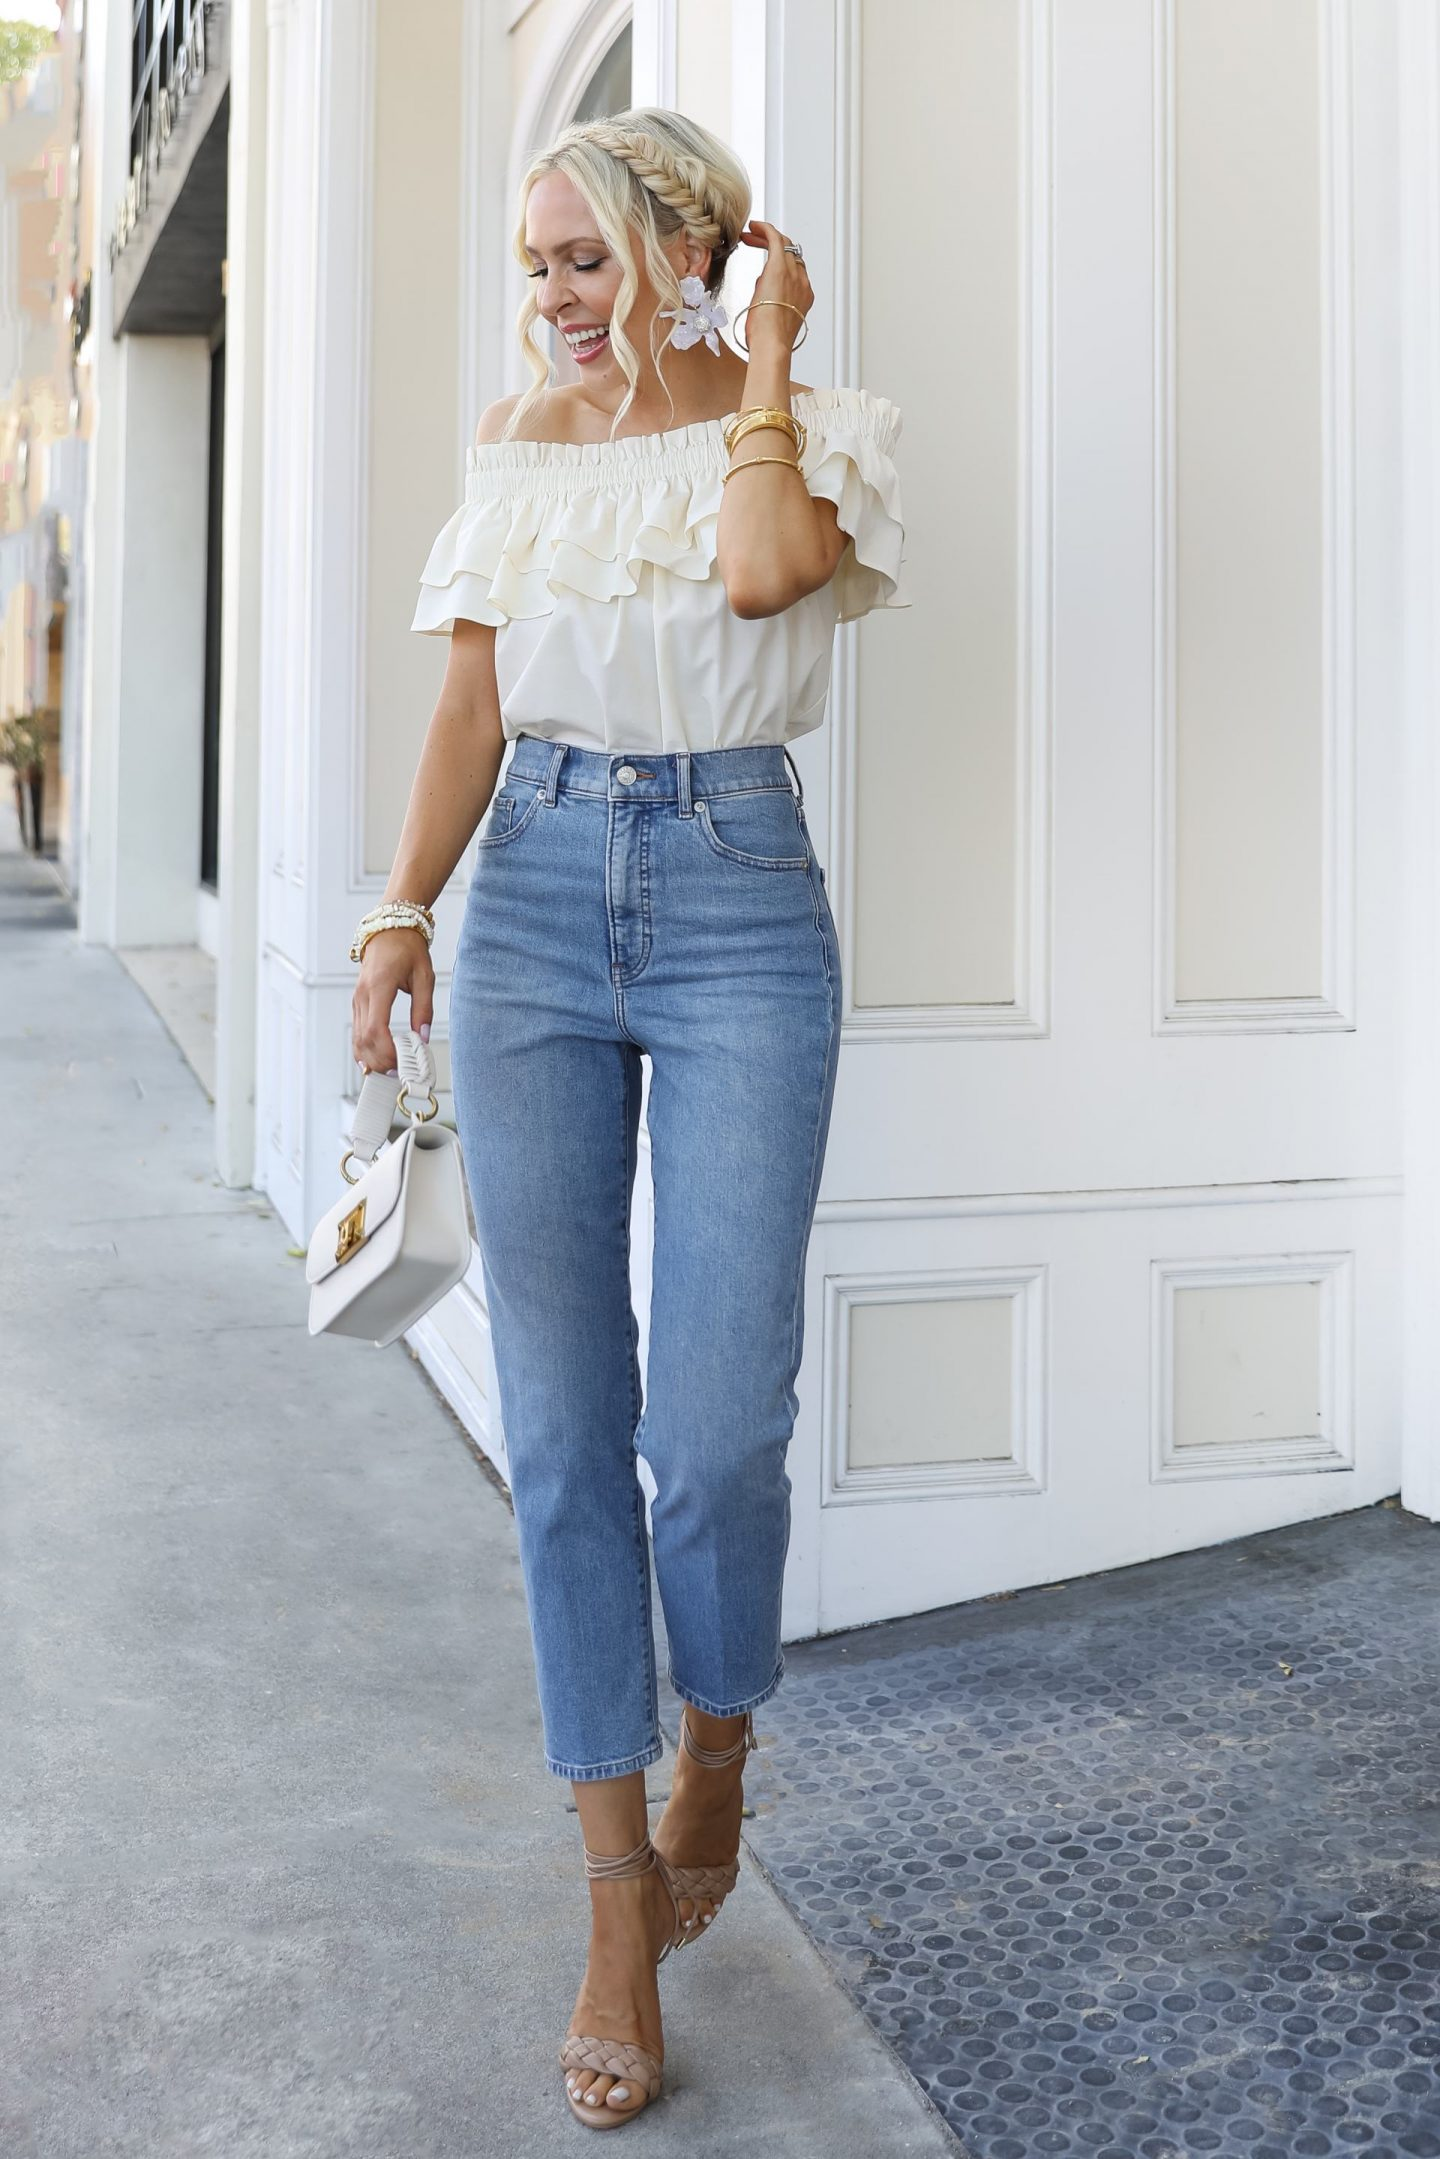 Summer date night style inspiration from Express, by Veronica Levy Lombard & Fifth.